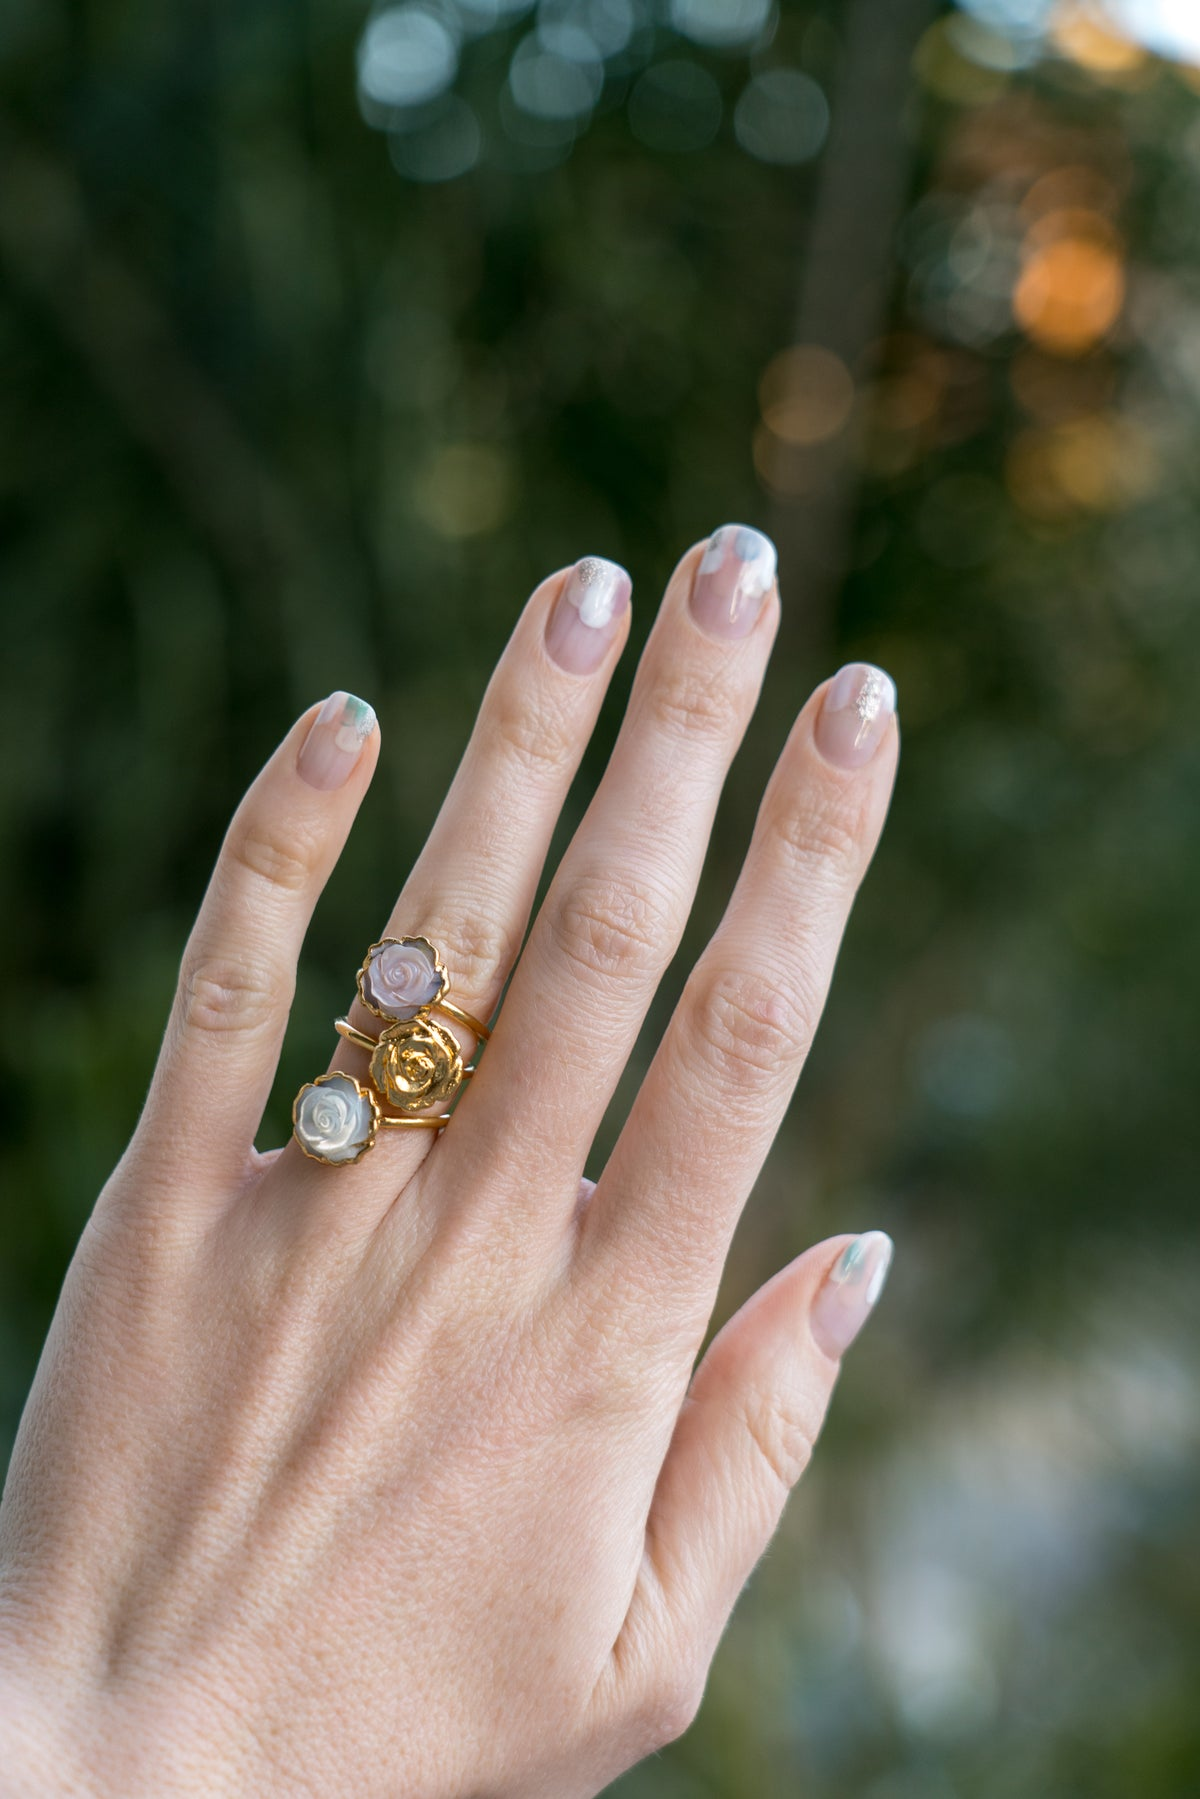 janna Conner pink mother of pearl and gold plated rosette ring stacks on model hand  with nail art mani